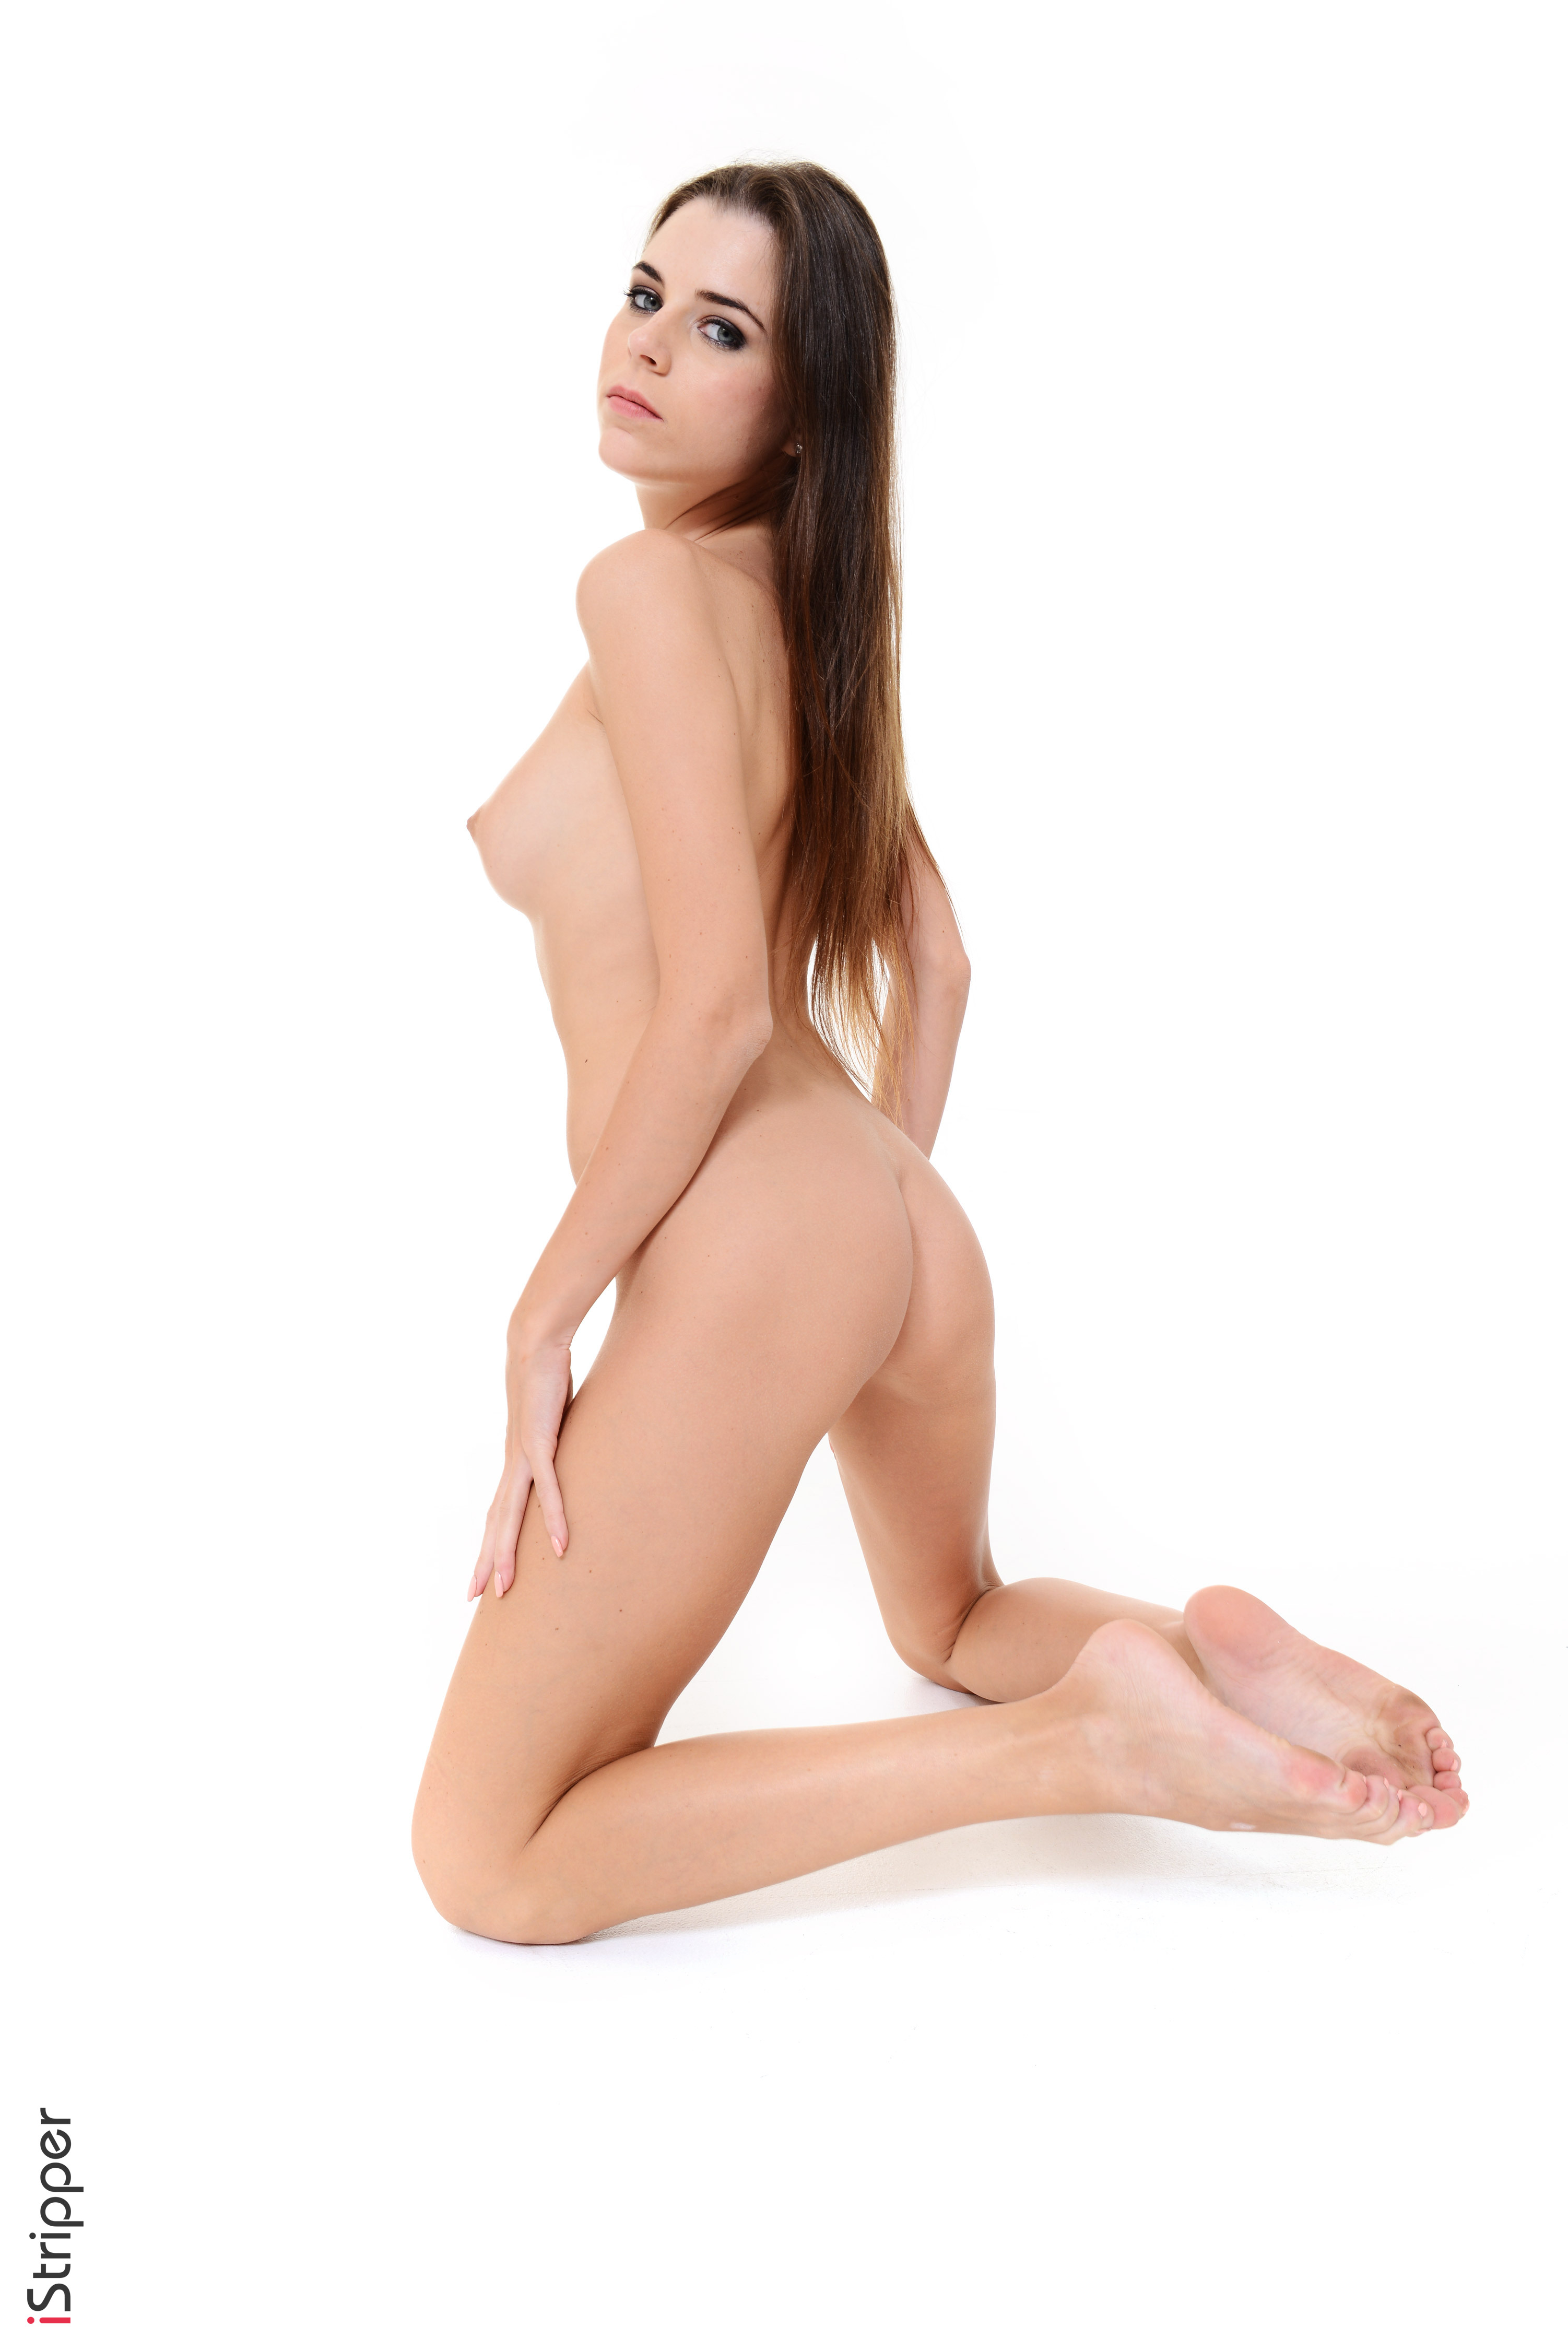 nude sexy girl wallpapers